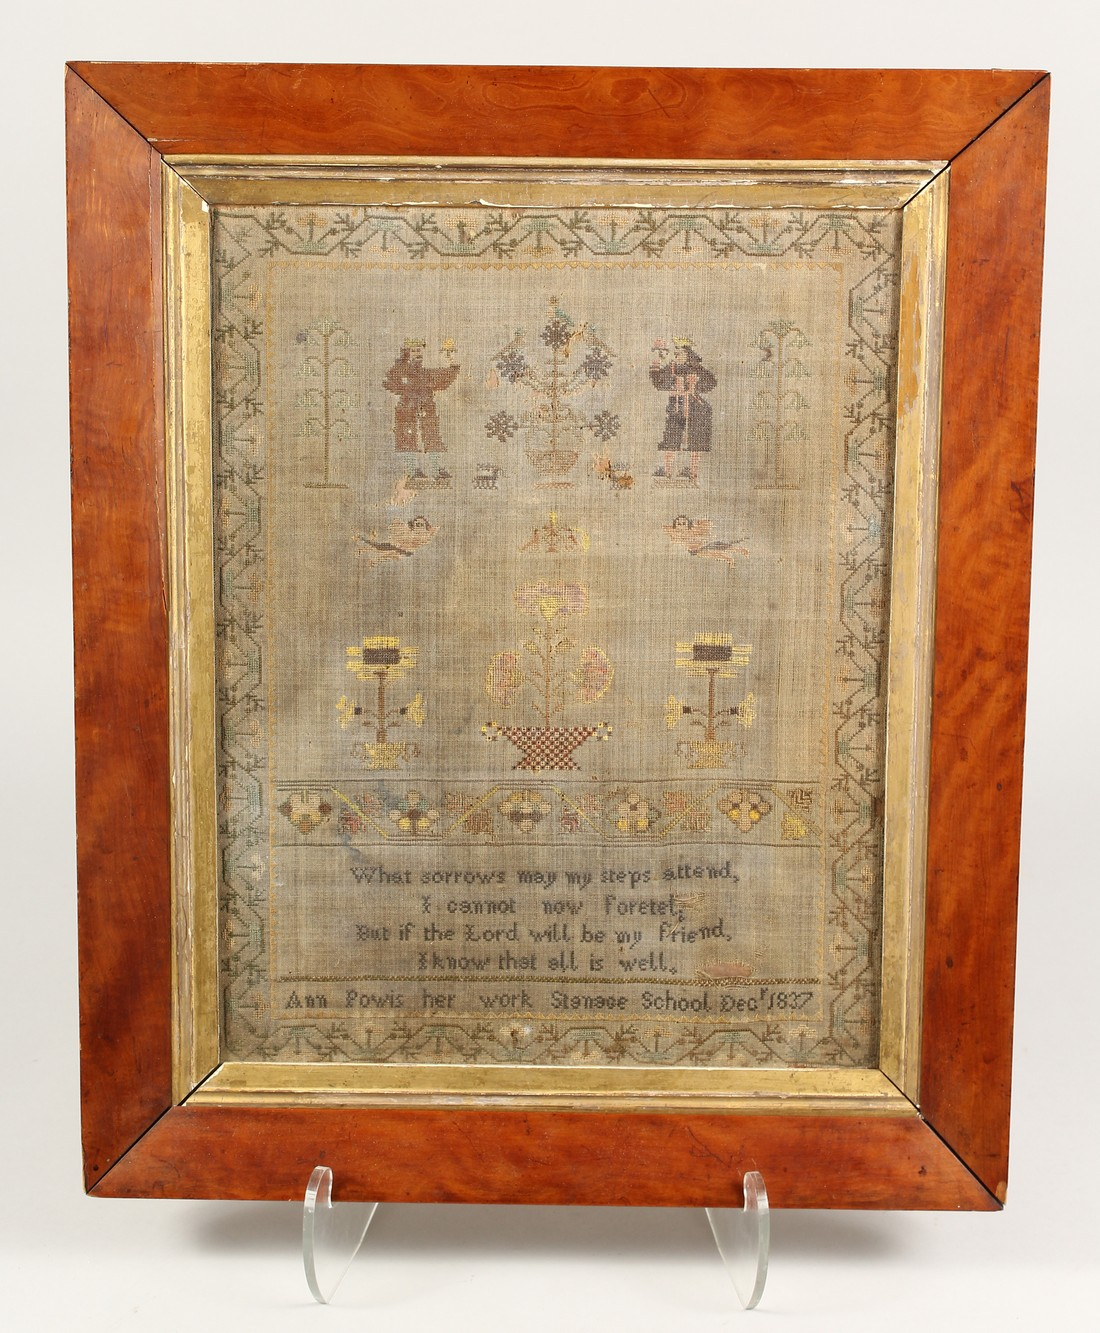 A 19TH CENTURY SAMPLER, depicting figures, flowers and a poem by Ann Powis dated 1837. 21.5ins and